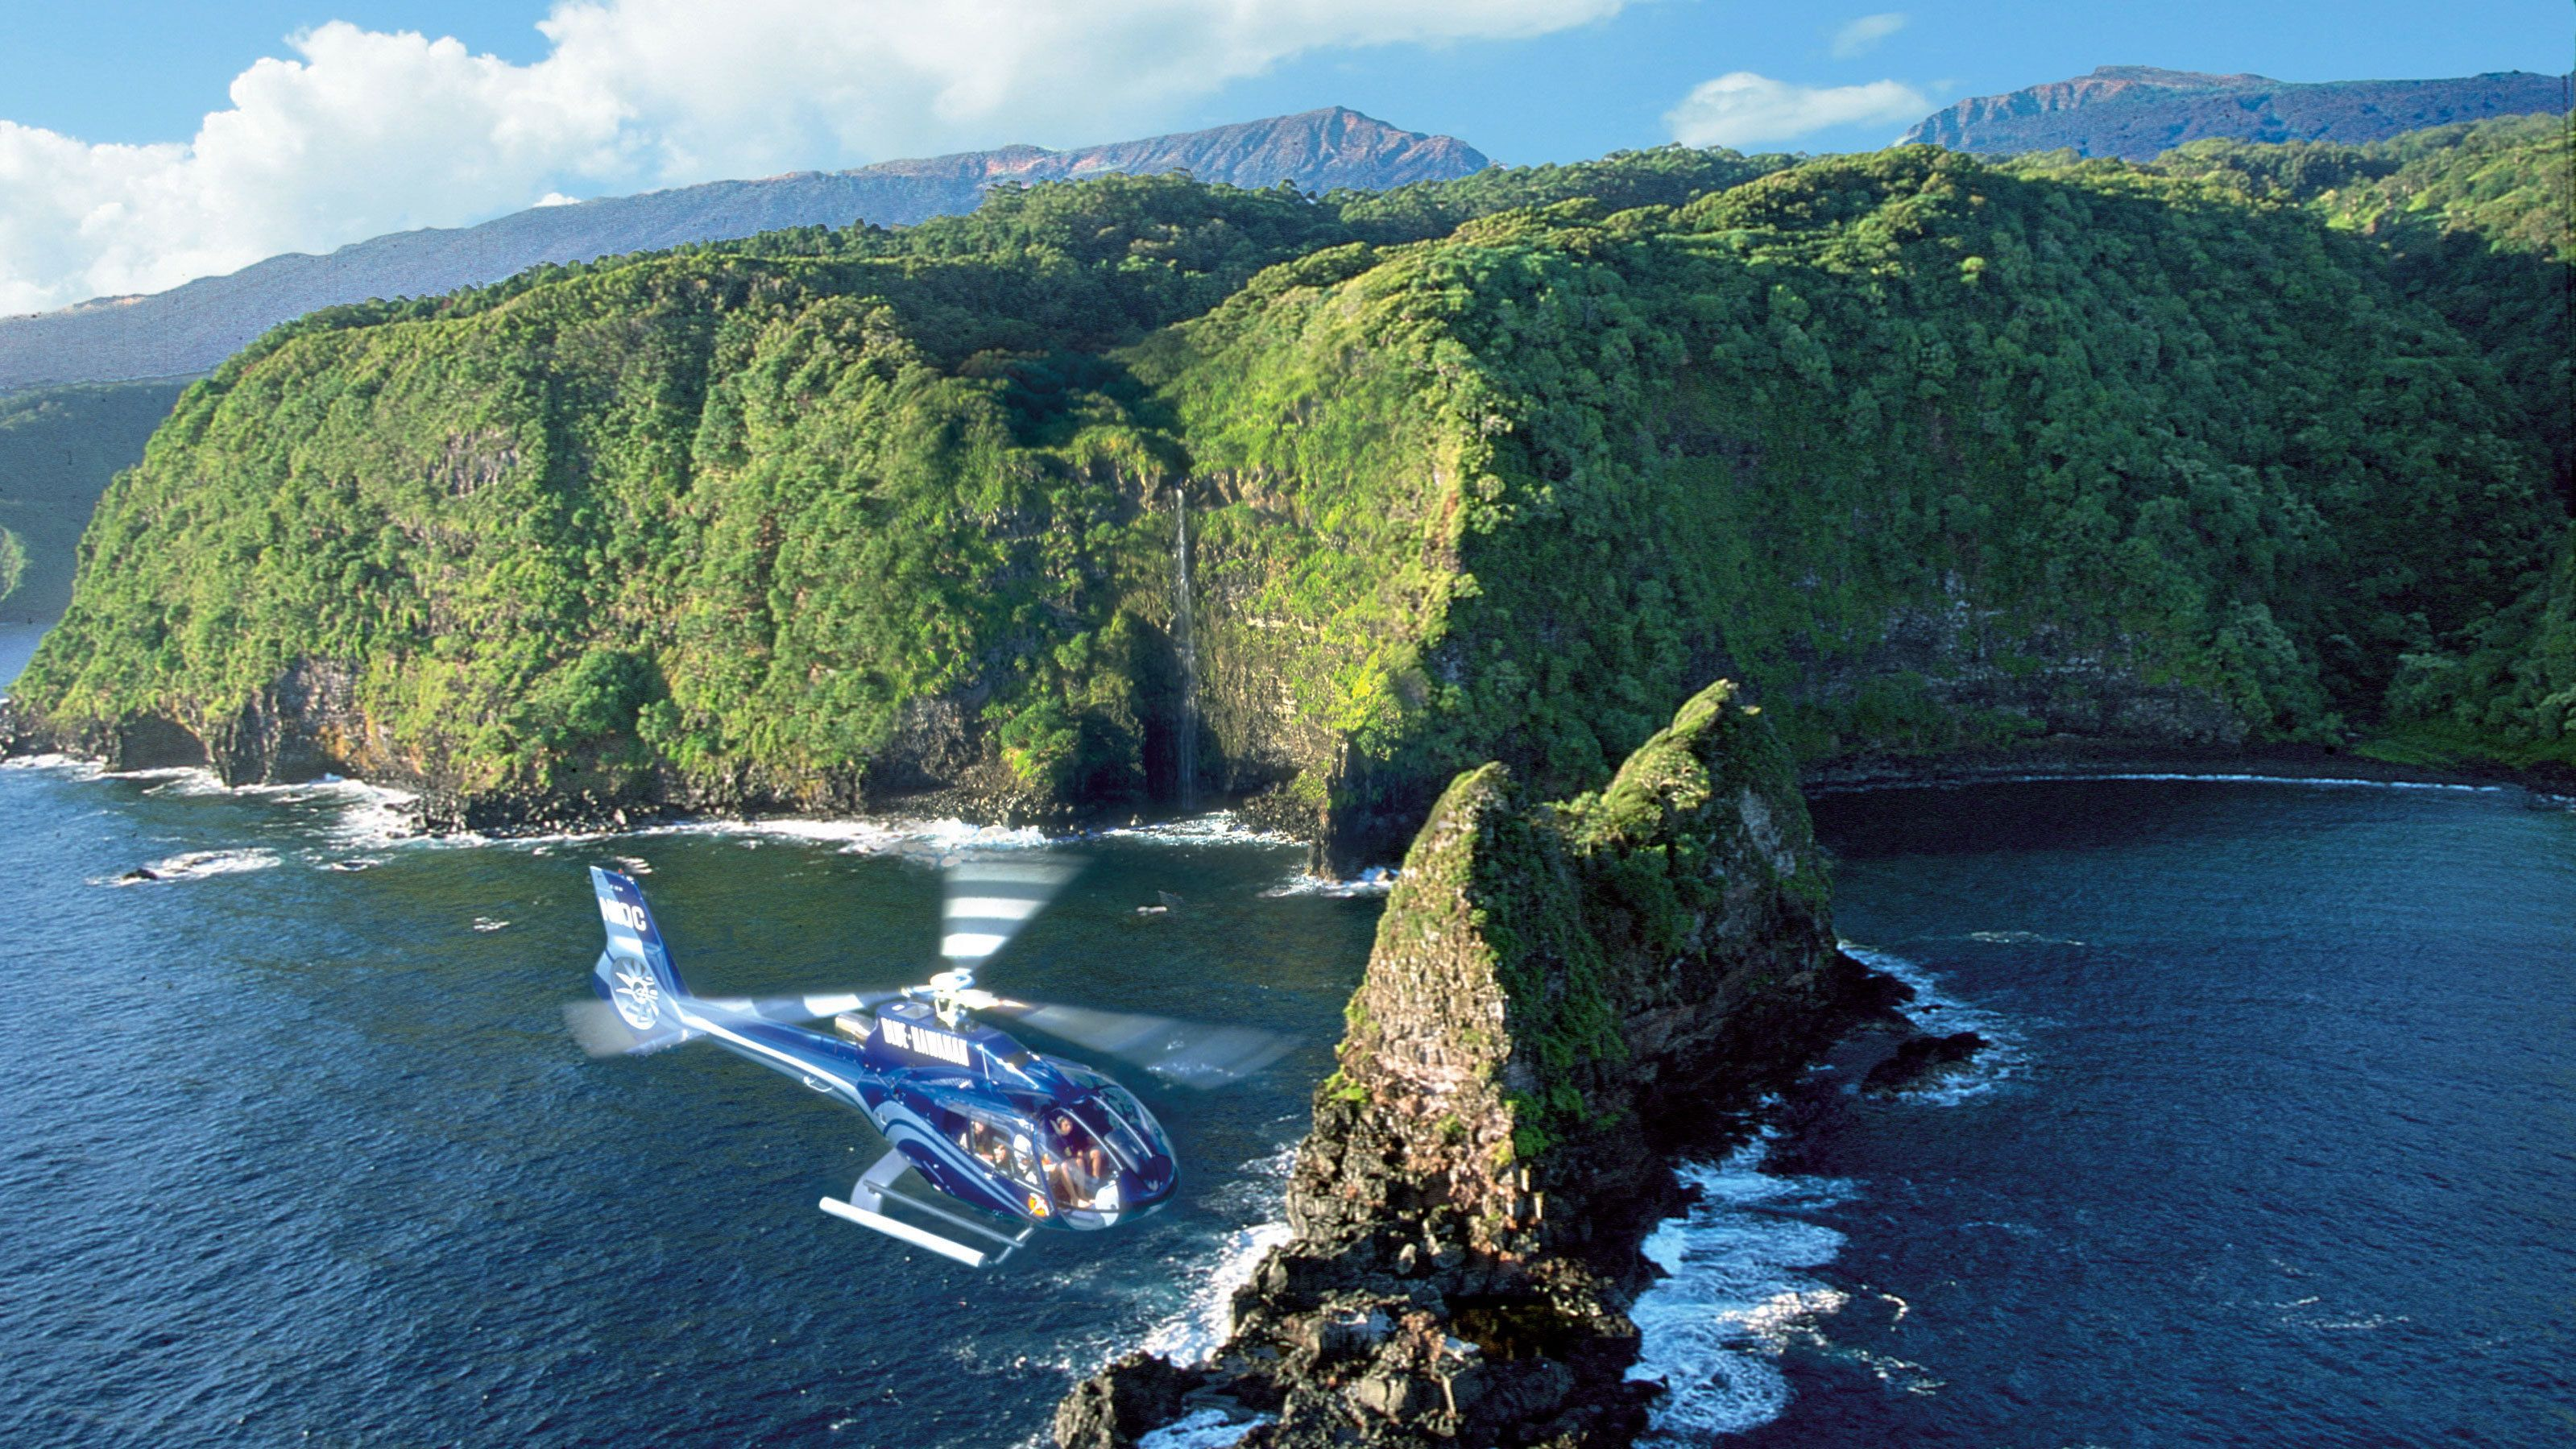 Hana Rainforest & Haleakala Volcano Helicopter Tour